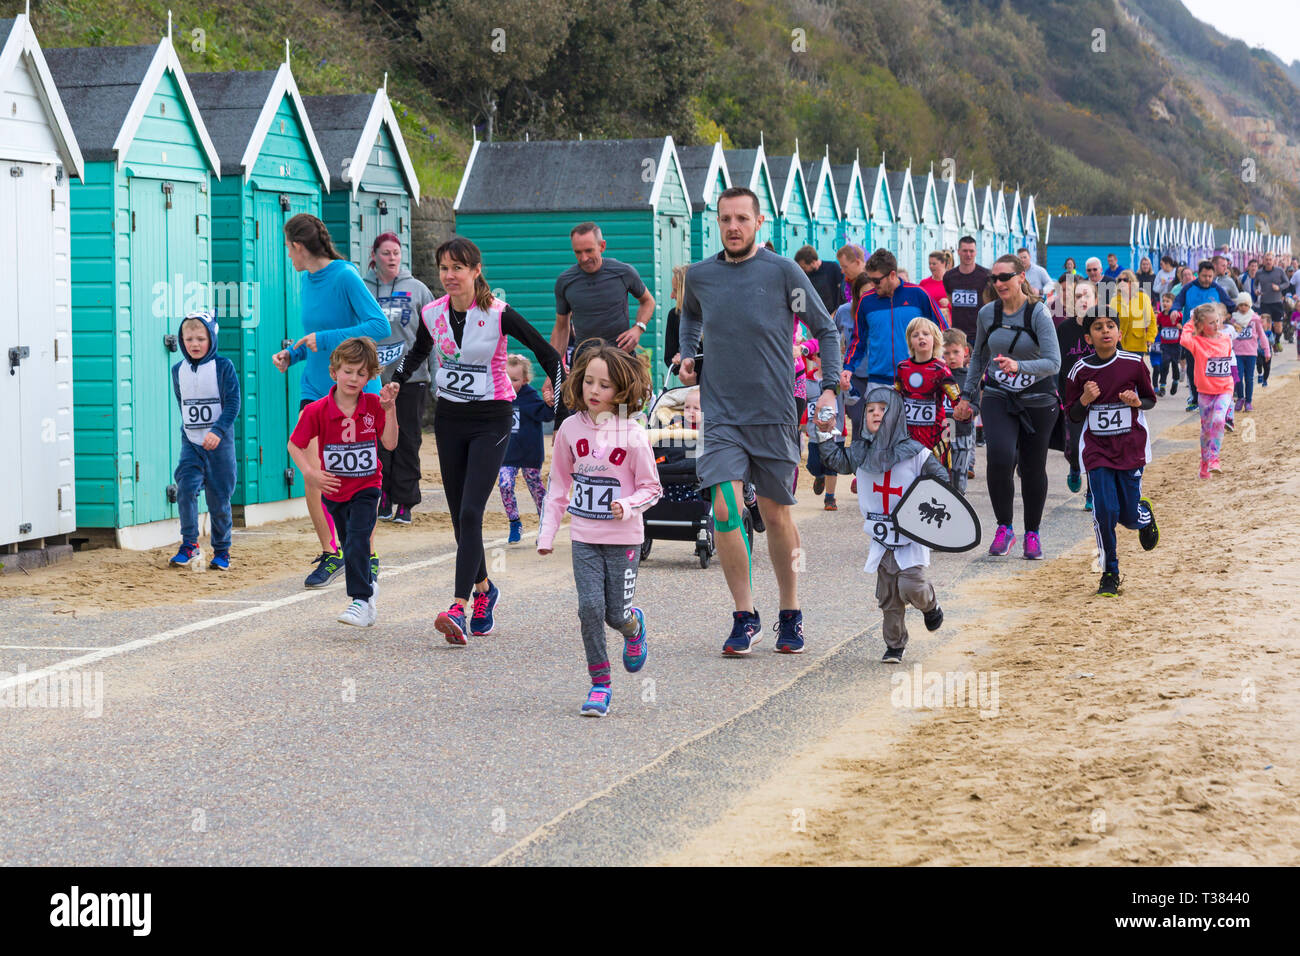 Bournemouth, Dorset, UK. 7th April 2019. Runners take part in the Bournemouth Bay Run on the theme of fun fairy-tale, which provides the option of a Half Marathon, 10k Run, 5k Run and 1k Kids Fun Run along Bournemouth's sea front. Participants get amazing views along the coast as they take part.Participants run to raise vital funds for the British Heart Foundation charity to fight against heart disease. A dry day with hazy sunshine. Credit: Carolyn Jenkins/Alamy Live News - Stock Image